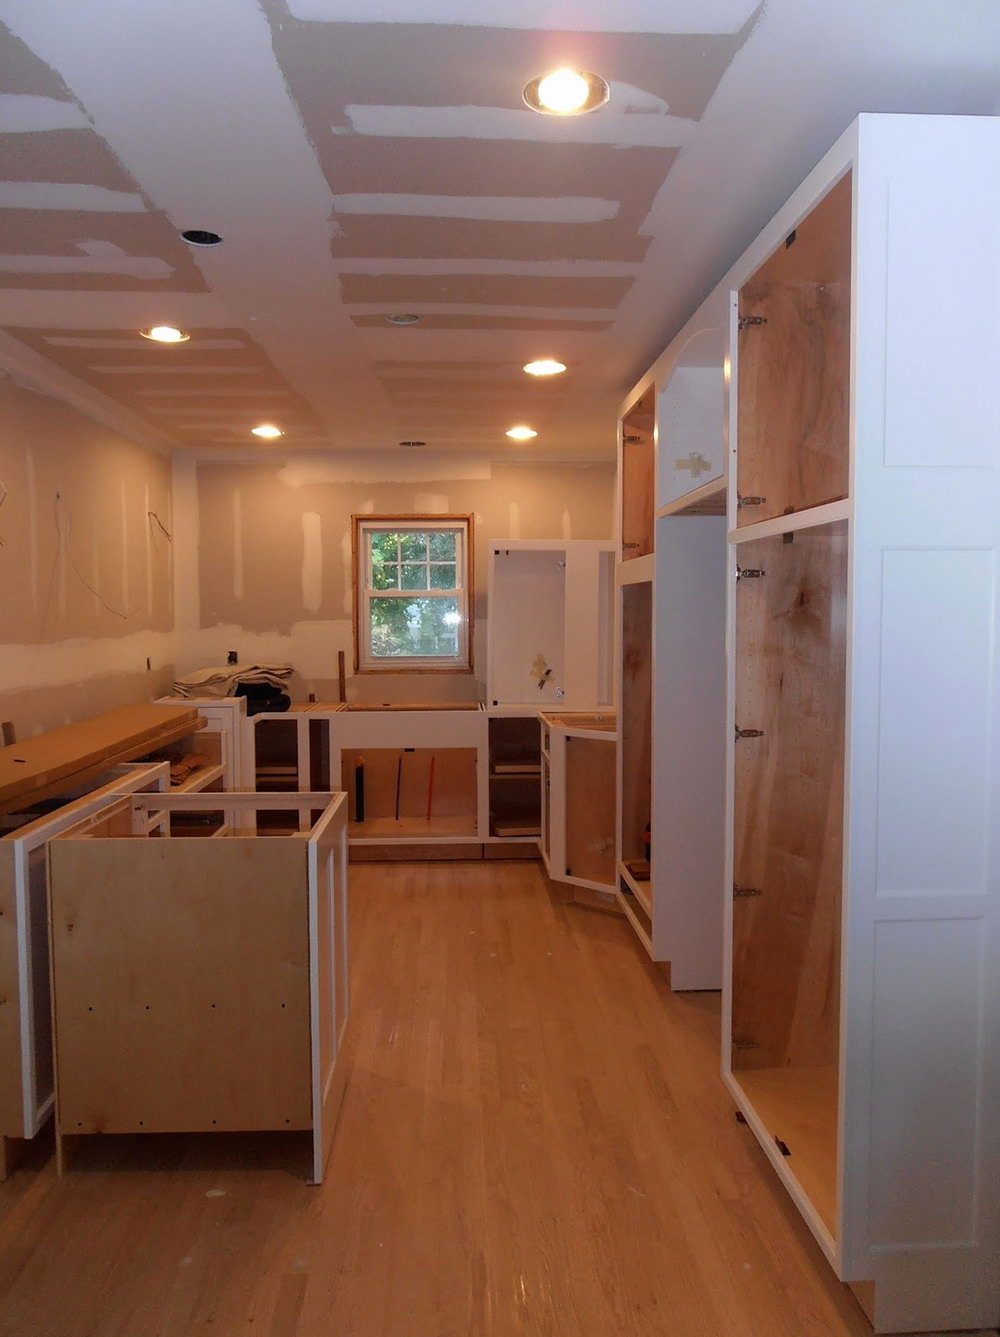 Best Place To Buy Kitchen Cabinets Near Me